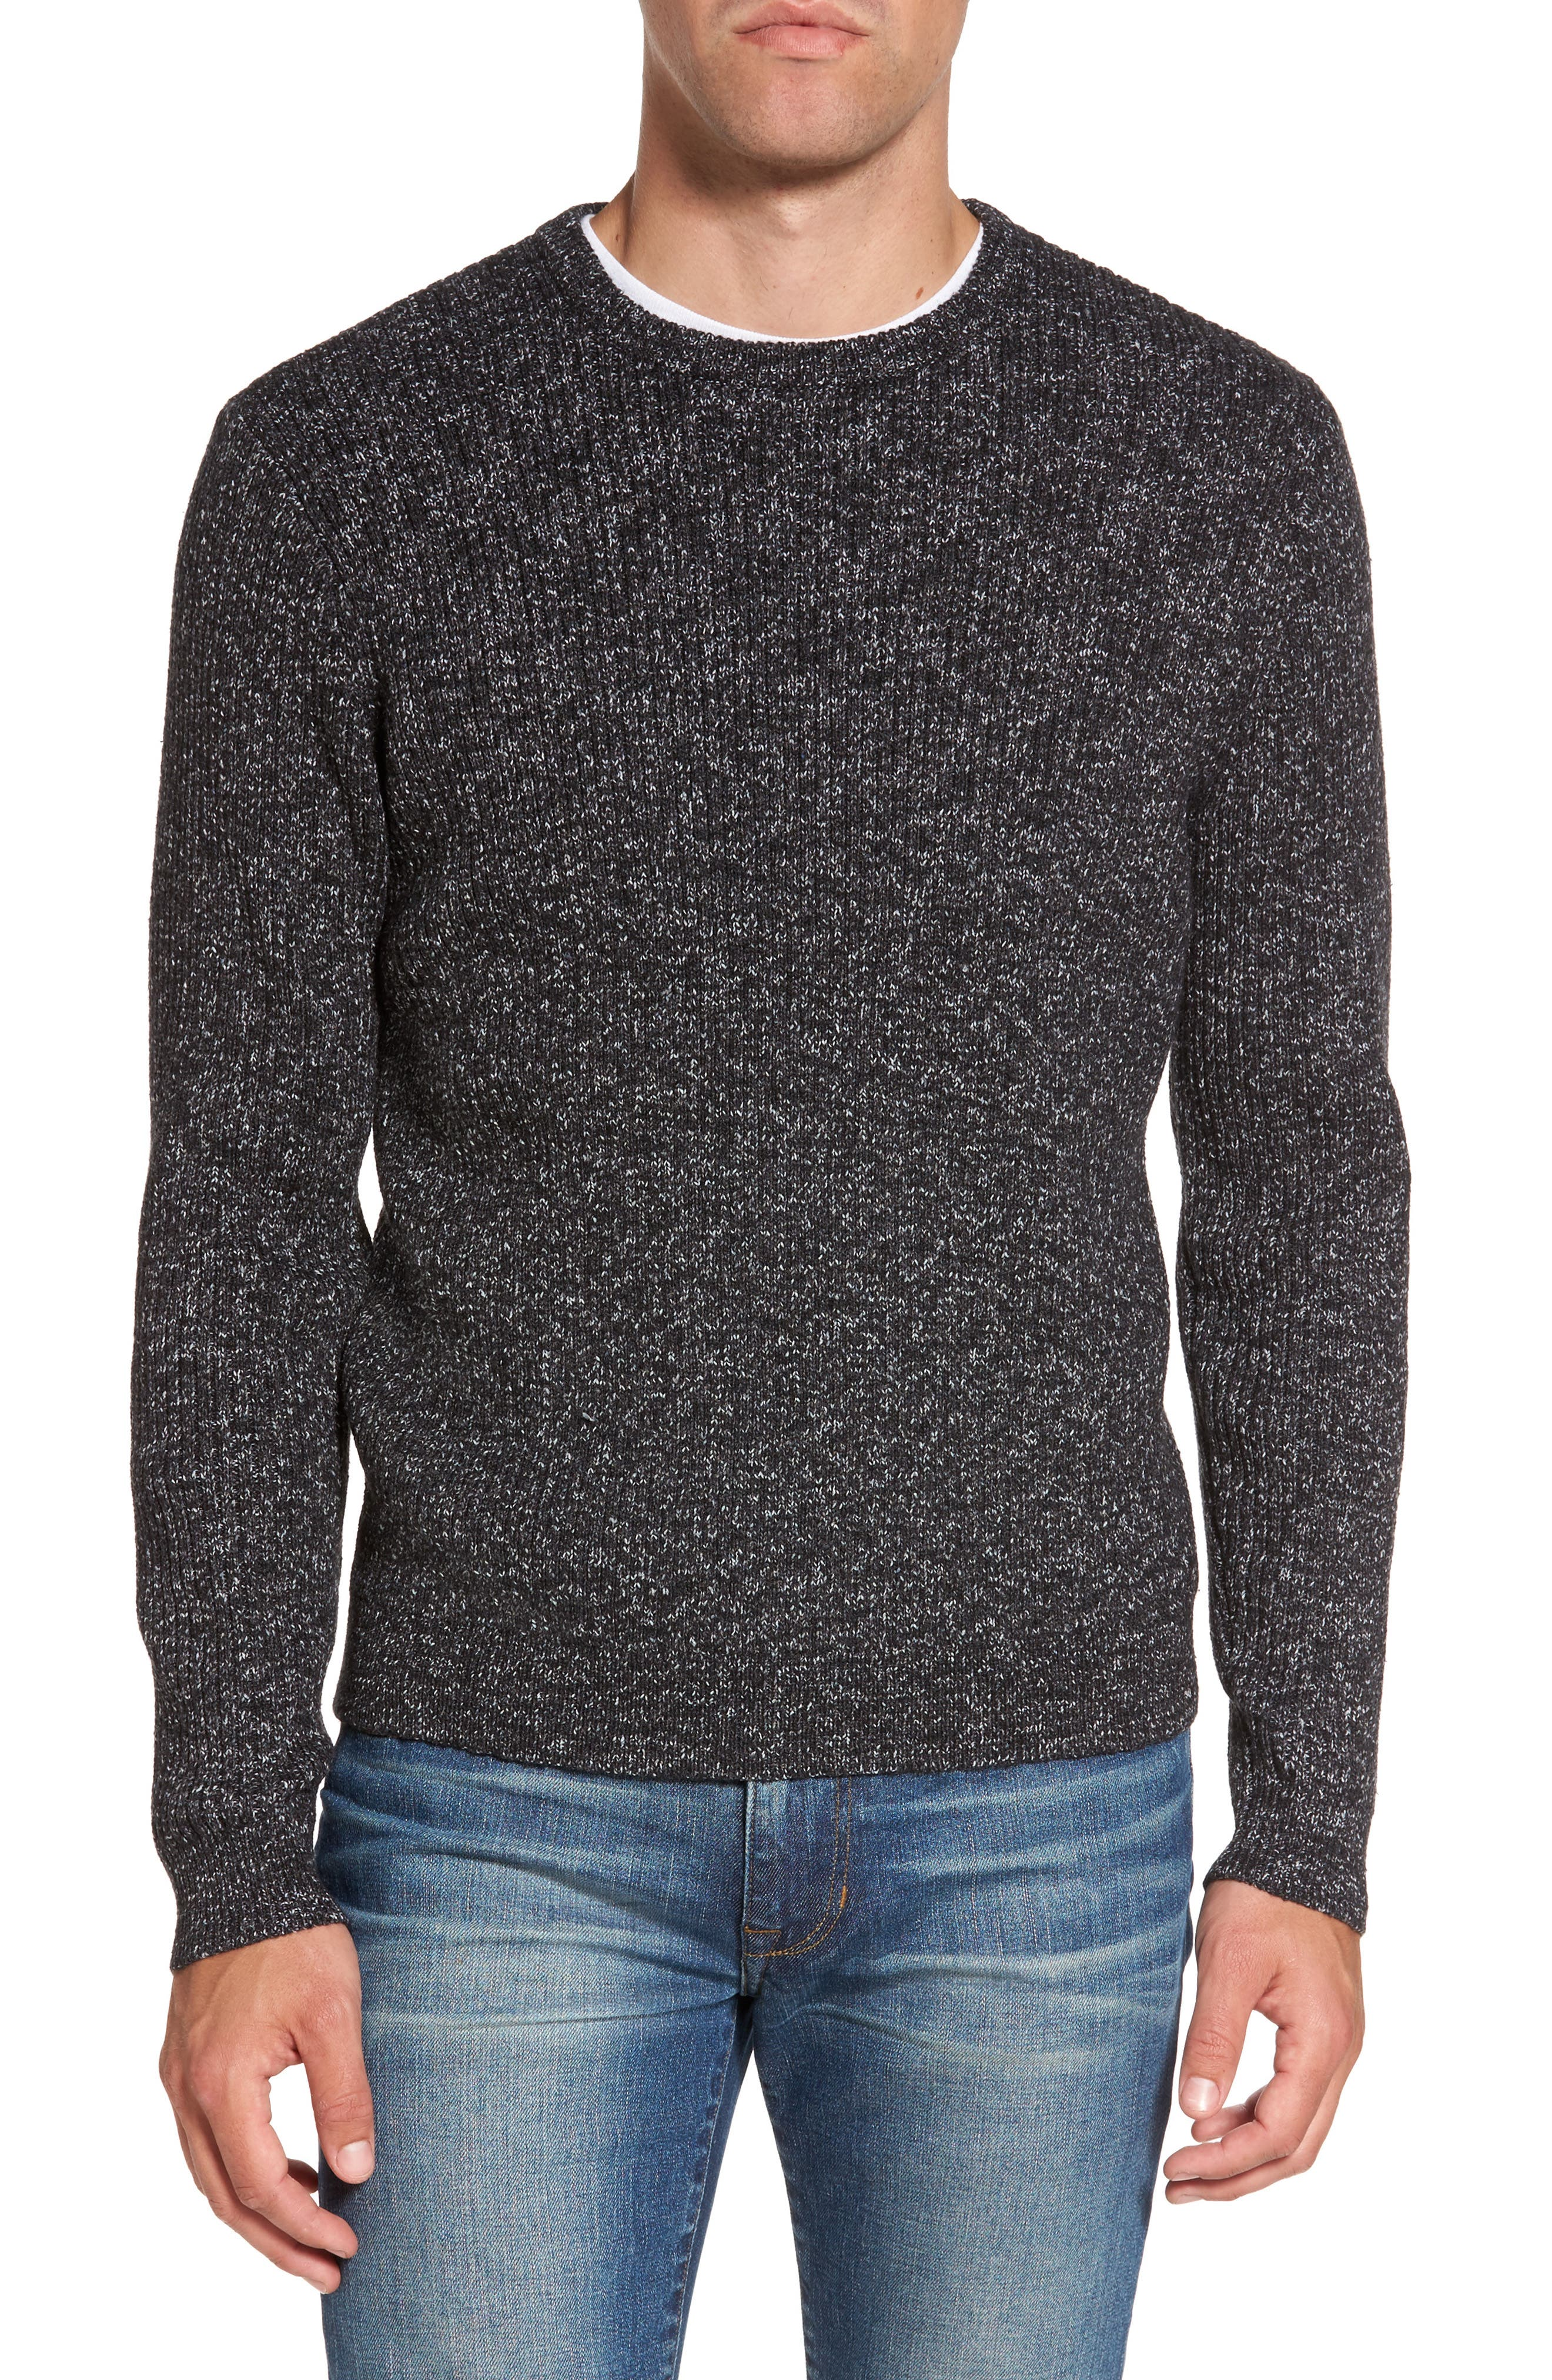 Donegal Space Dye Nep Sweater,                             Main thumbnail 1, color,                             Charcoal Donegal